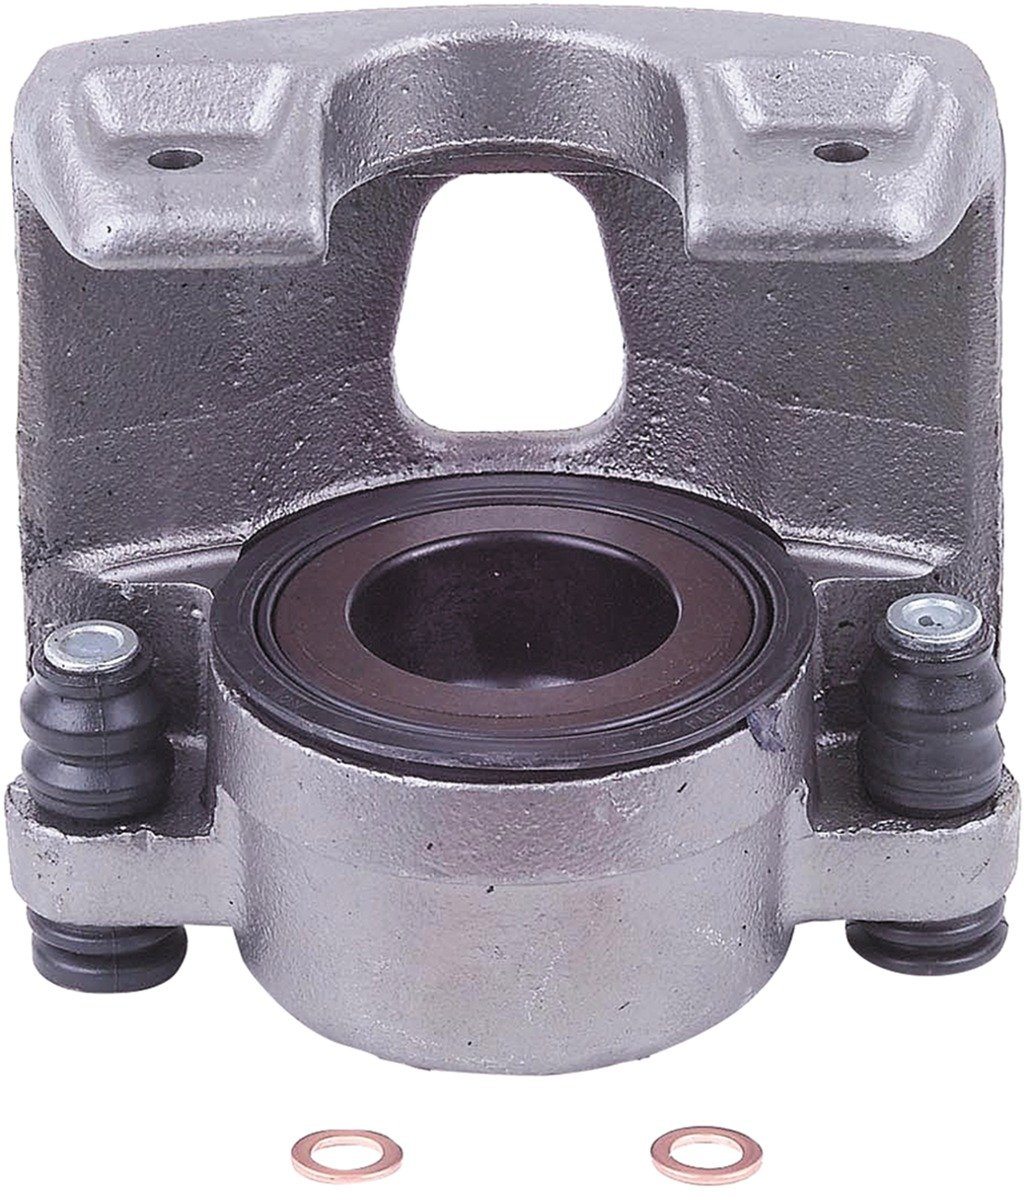 Cardone 18-4391 Remanufactured Domestic Friction Ready Unloaded Brake Caliper